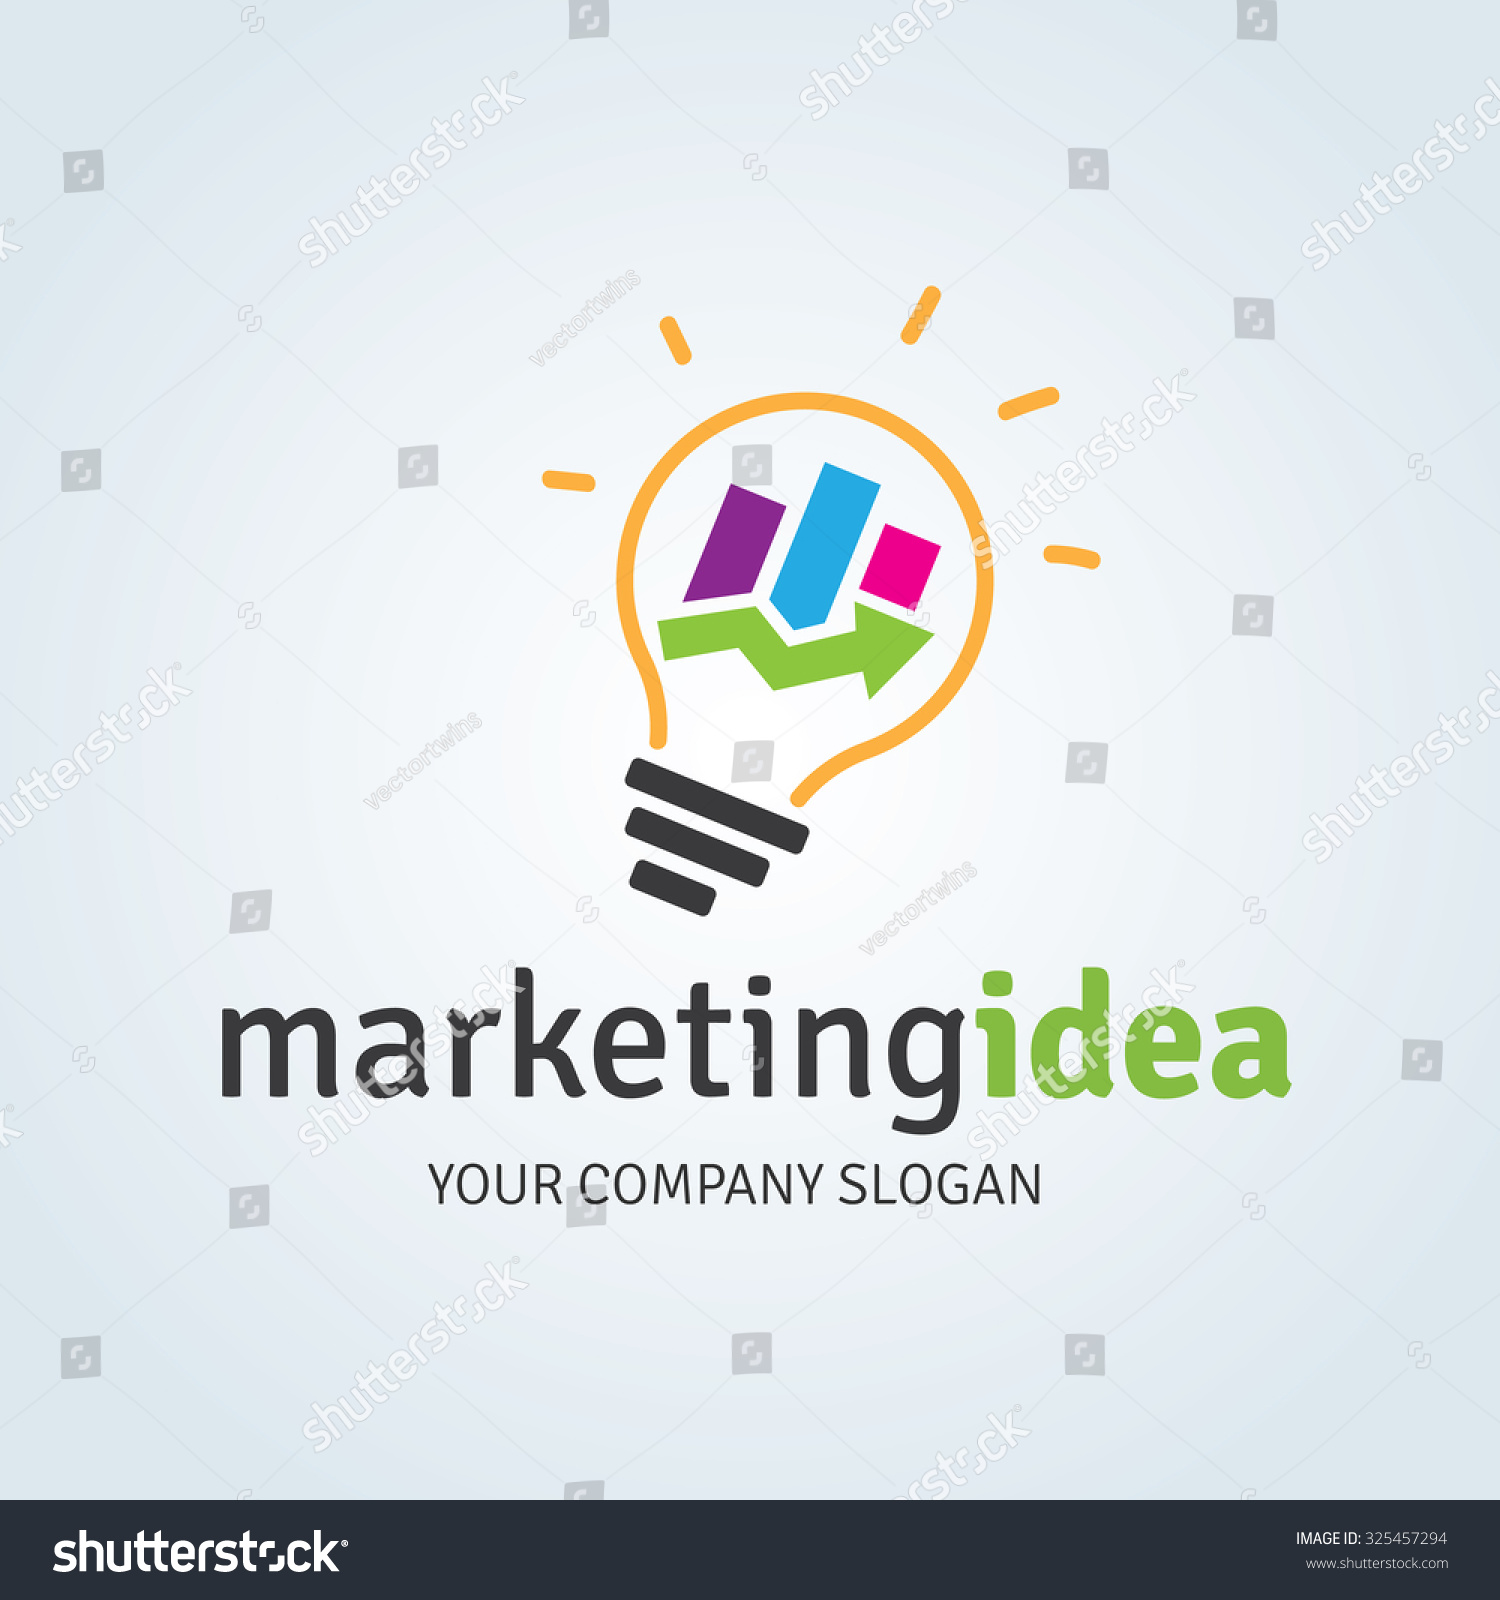 Royalty free marketing idea logomarketing logo 325457294 stock marketing idea logomarketing logovector logo template 325457294 altavistaventures Image collections